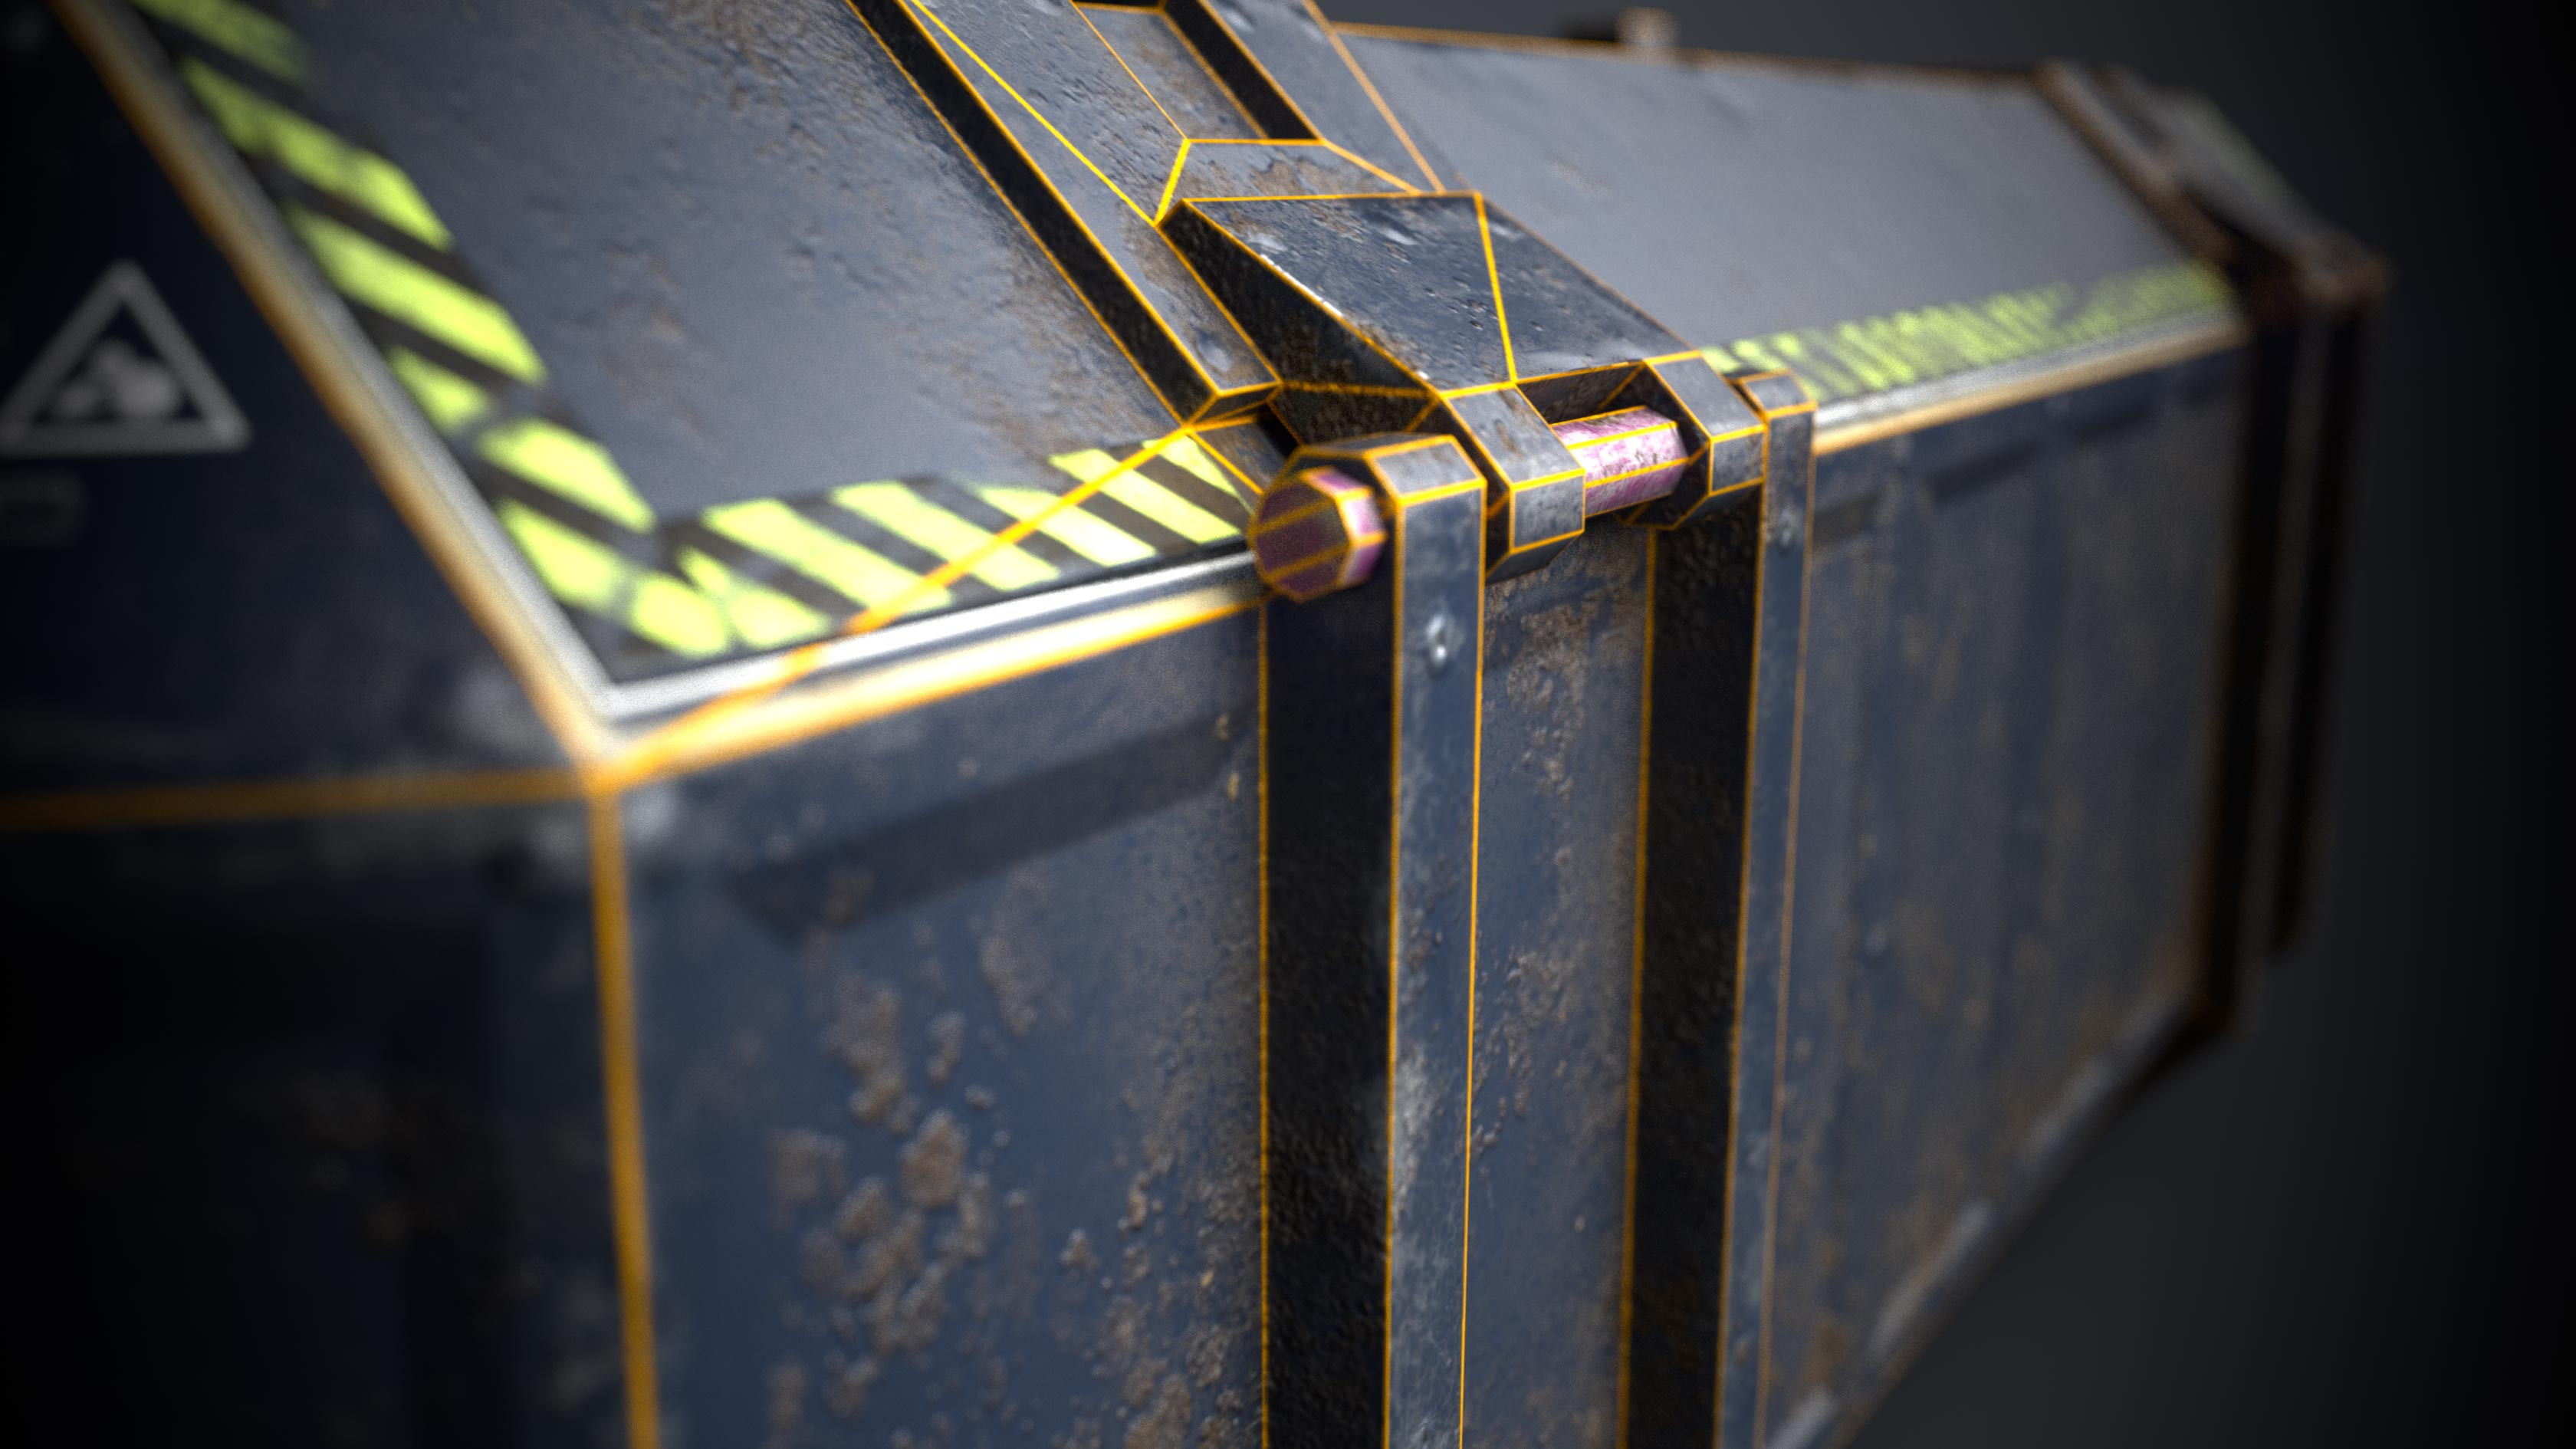 This is a close up rendering of the side of a sturdy but beaten blue and dusty 3D Sci fi crate or container with biometric technology. It is a 3D game object with 1098 triangles and a PBR texture. The rendering shows a close up of the wireframe or polygon flow of the hinges that opens the 3D sci fi crate. It is created by Thom Hujanen a university educated video game designer and 3D artist.